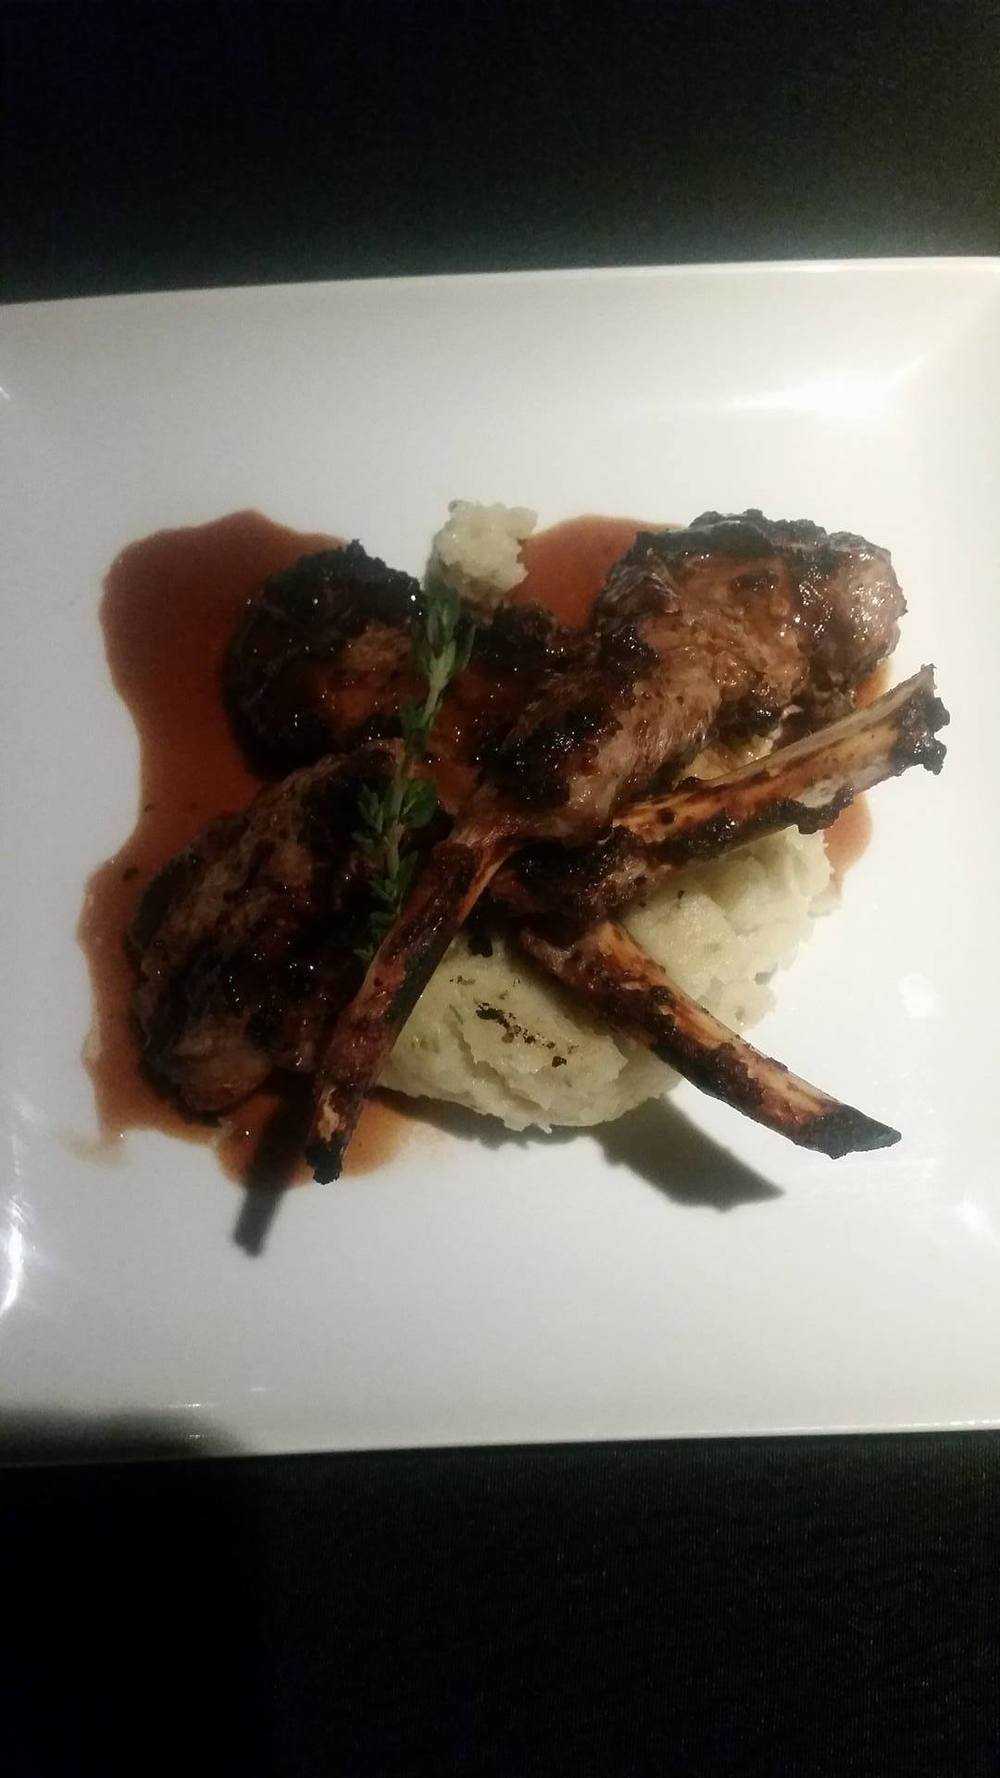 Lamb chops with mashed potatoes. I could've eaten this all night, too.